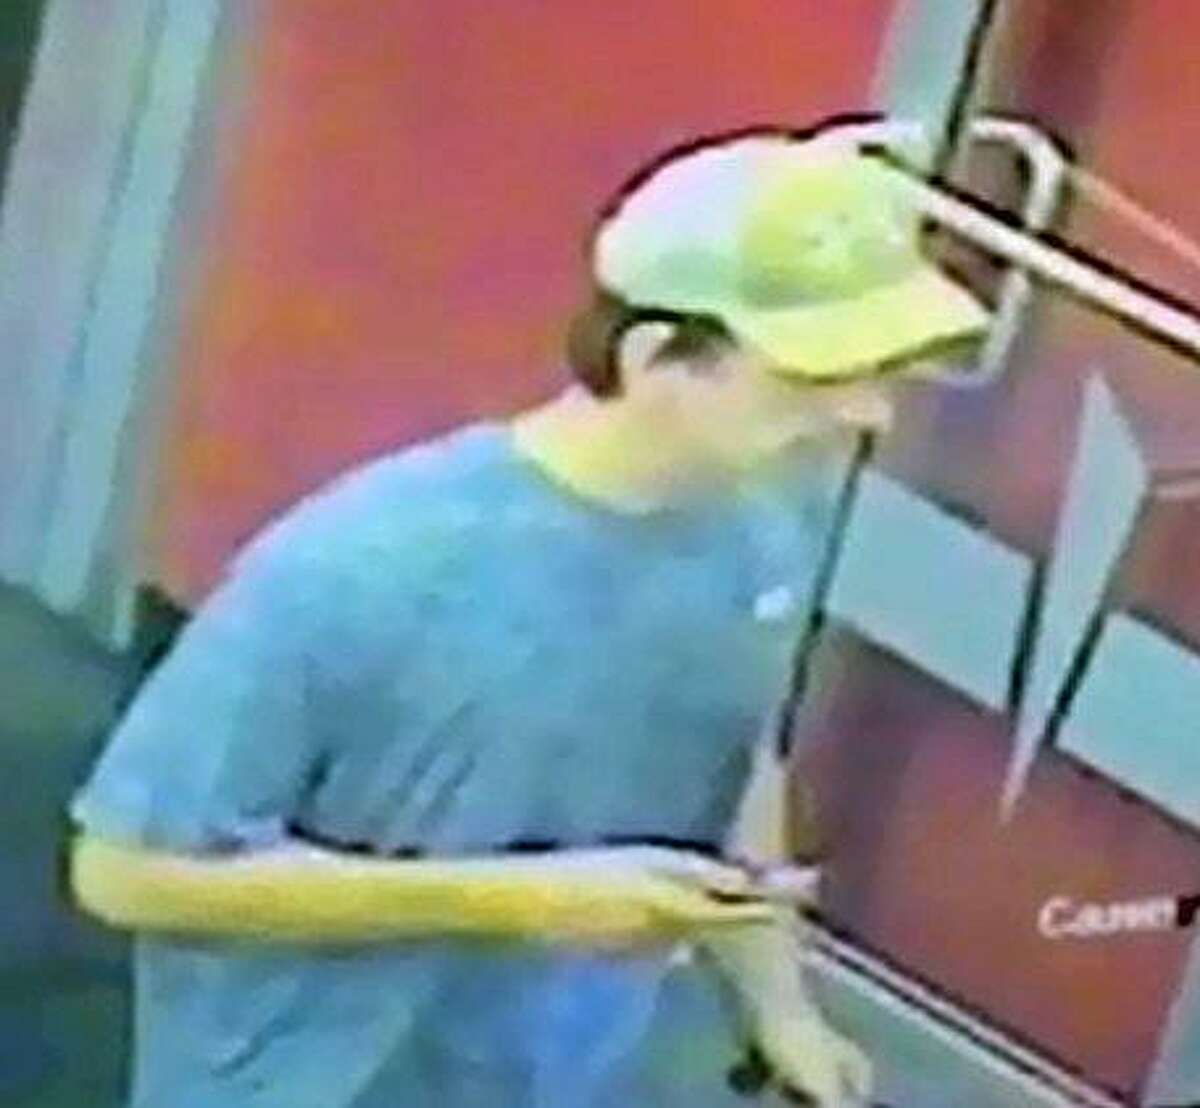 Fairfield police are looking for this man, who they suspect broke into lockers at the Edge Fitness Center Wednesday night, taking, among other things, a handgun. Fairfield,CT. 8/10/17